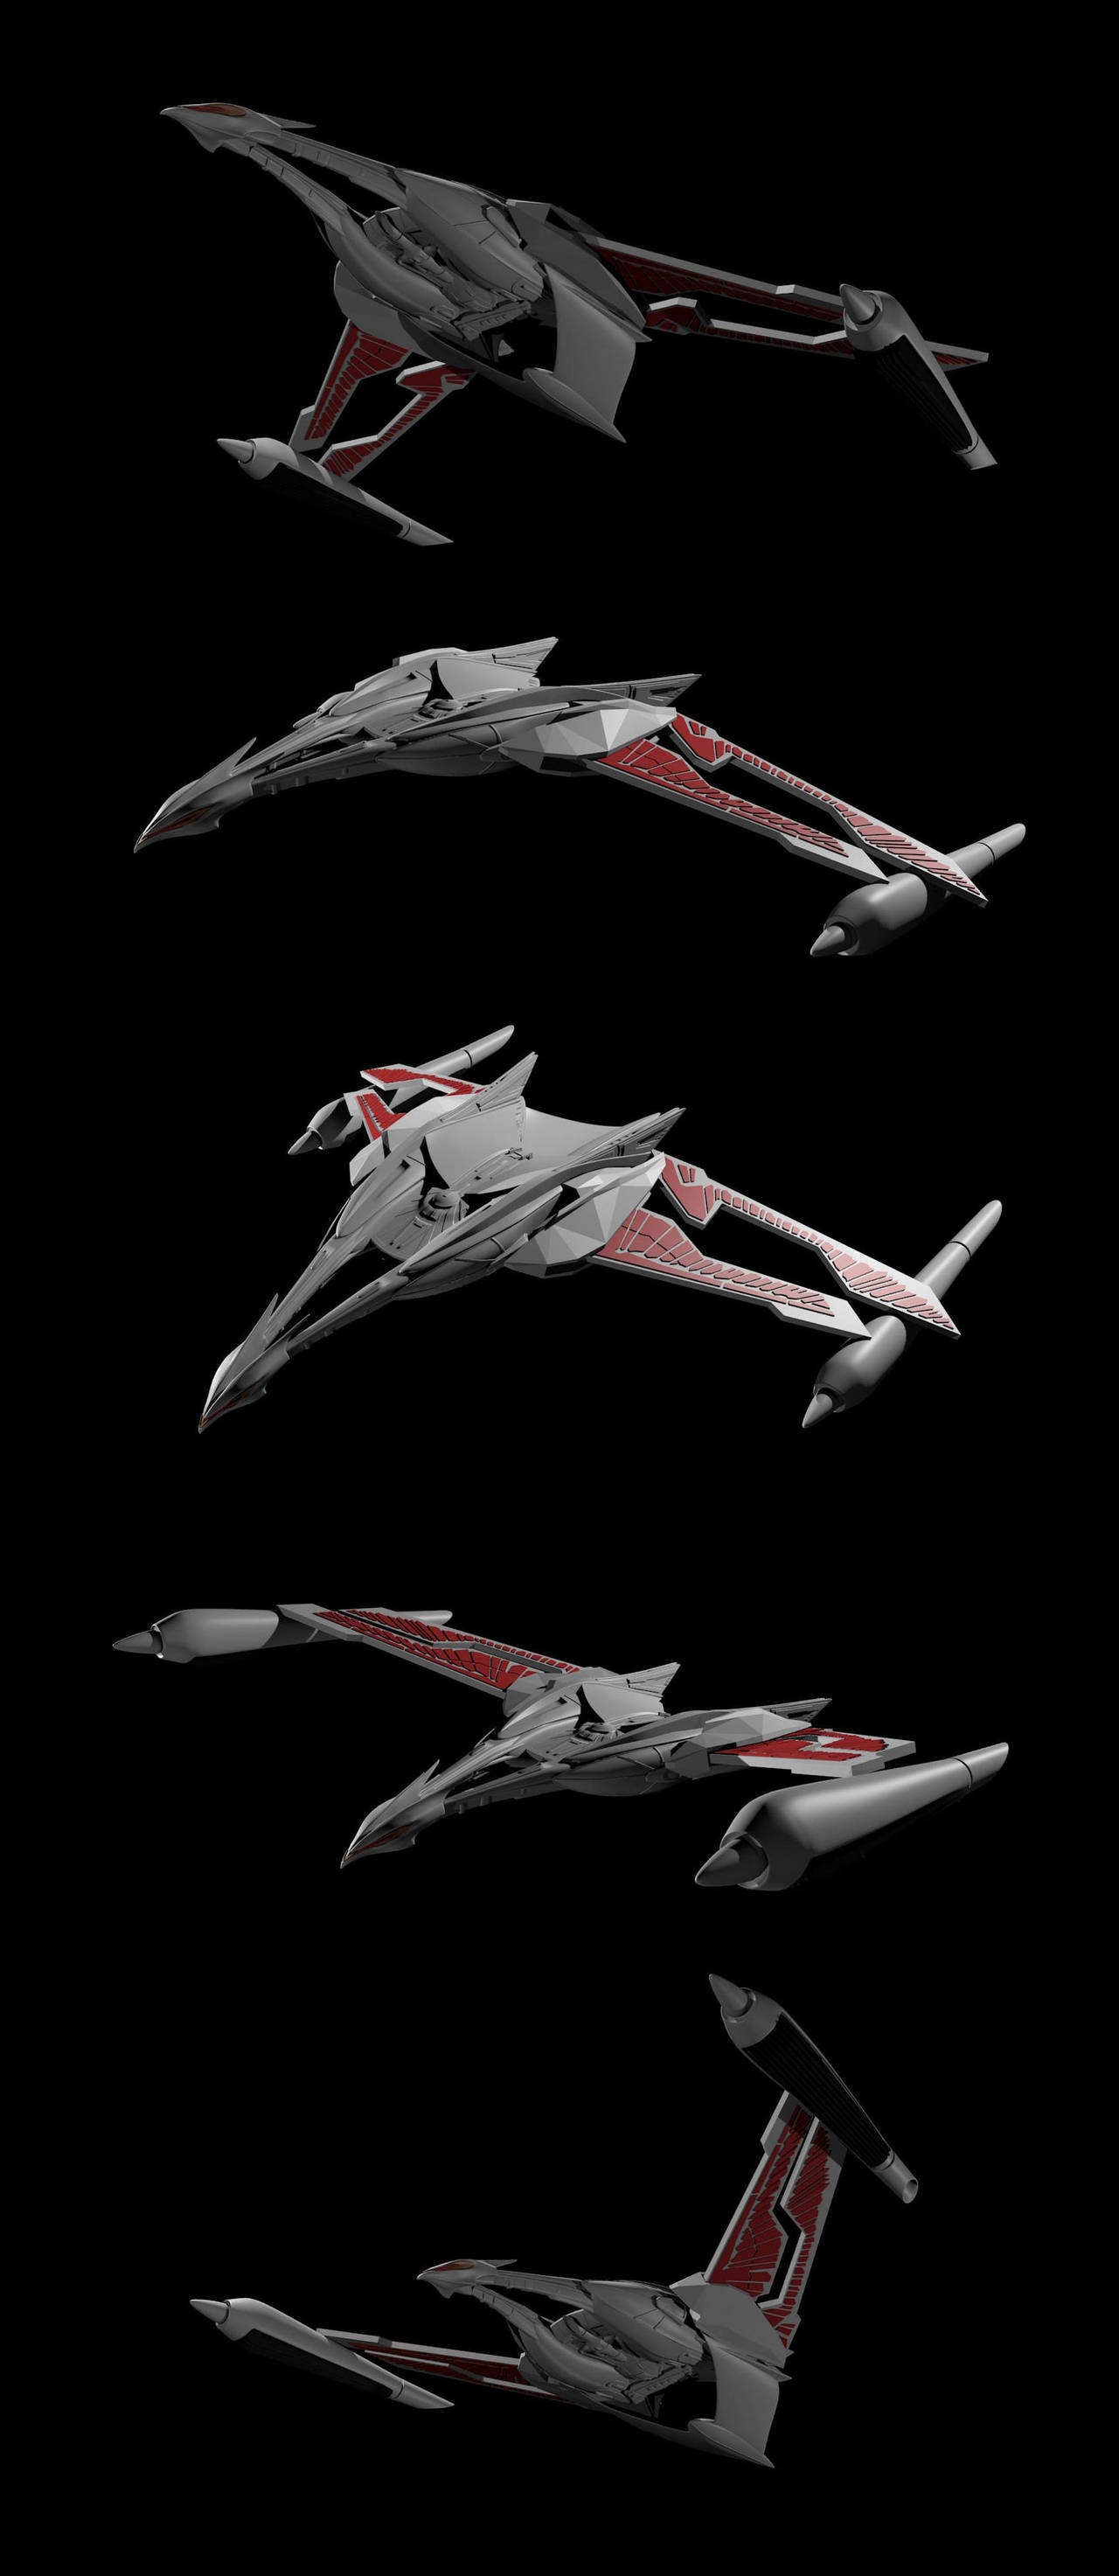 romulan_bird_of_prey_wip_07_by_jrxtin_dcv1b0q-fullview.jpg